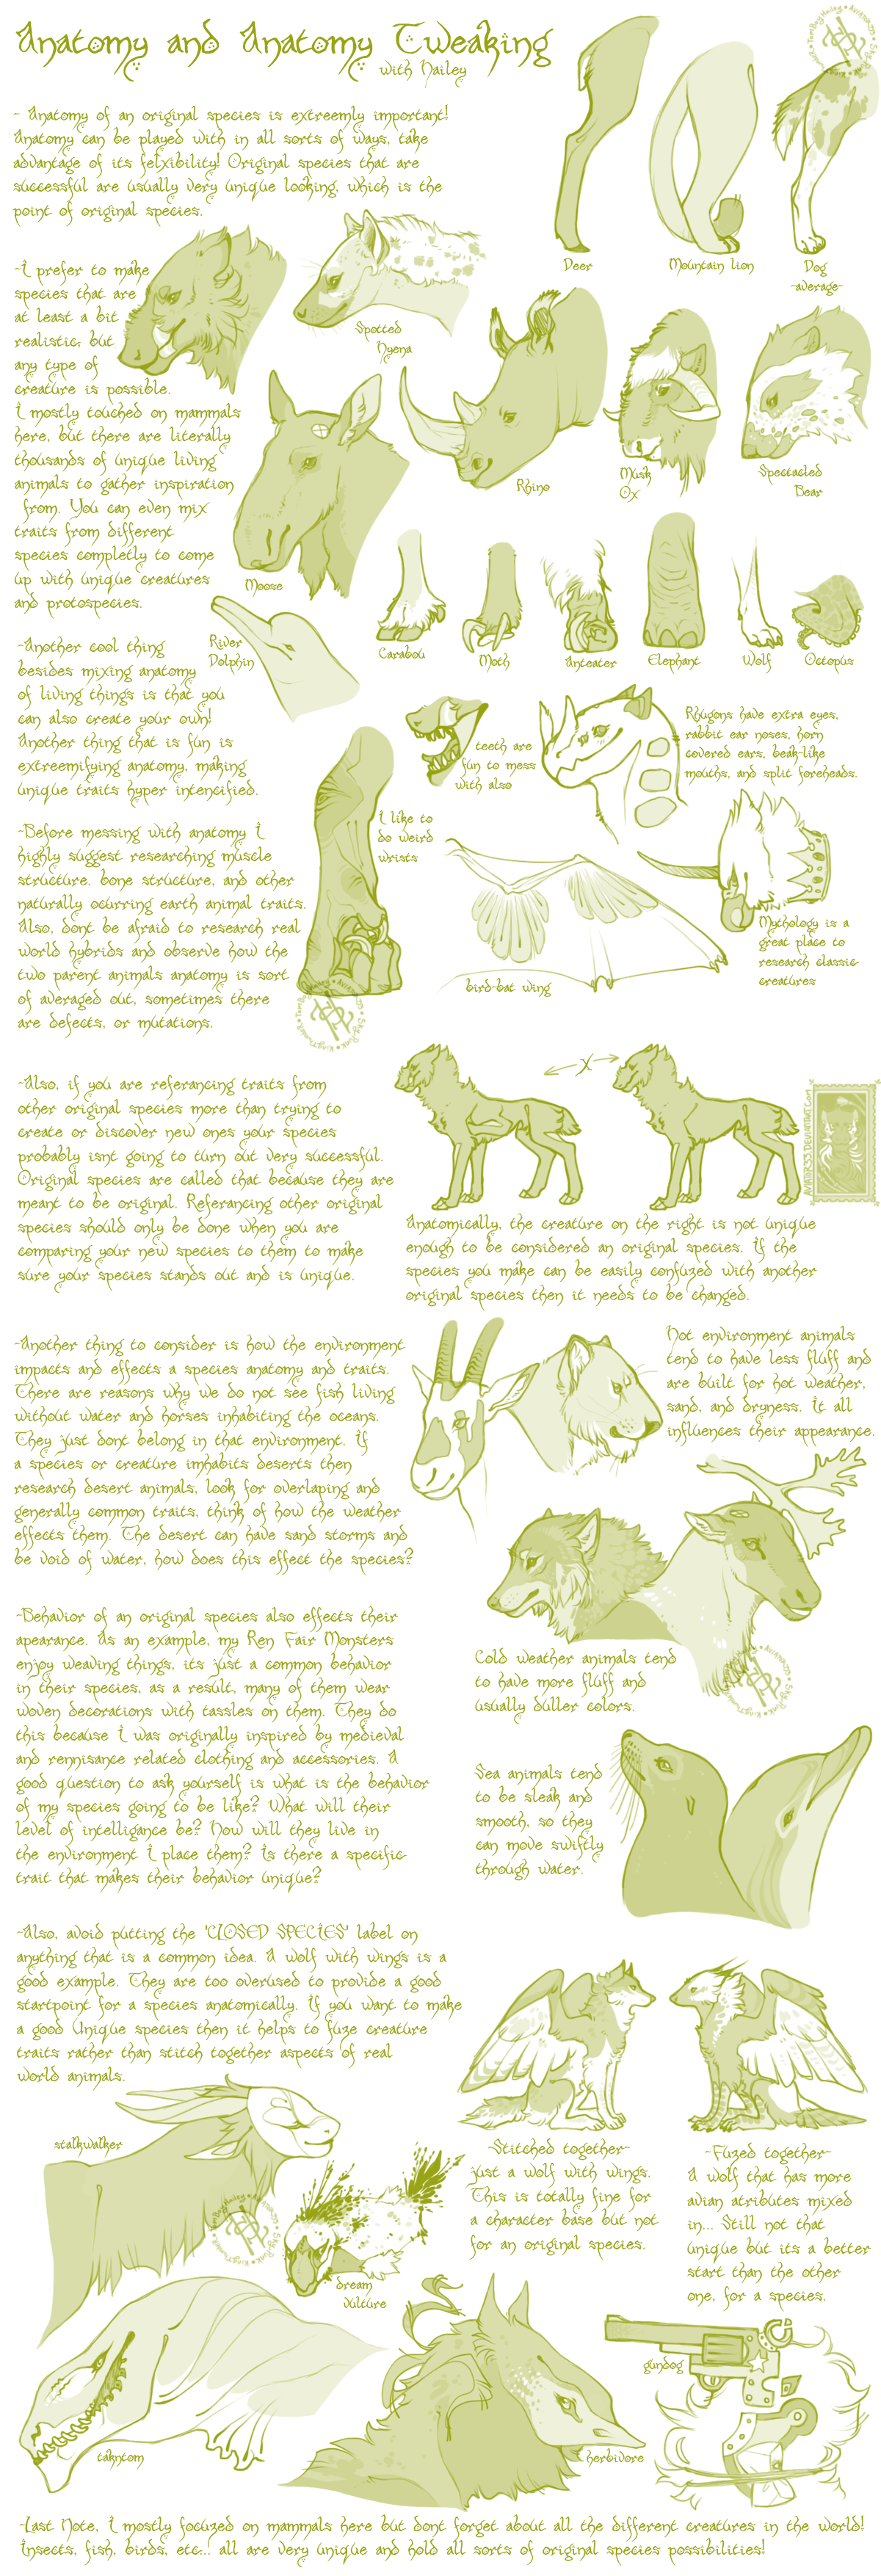 Species Anatomy Tut/Guide by Aviator33